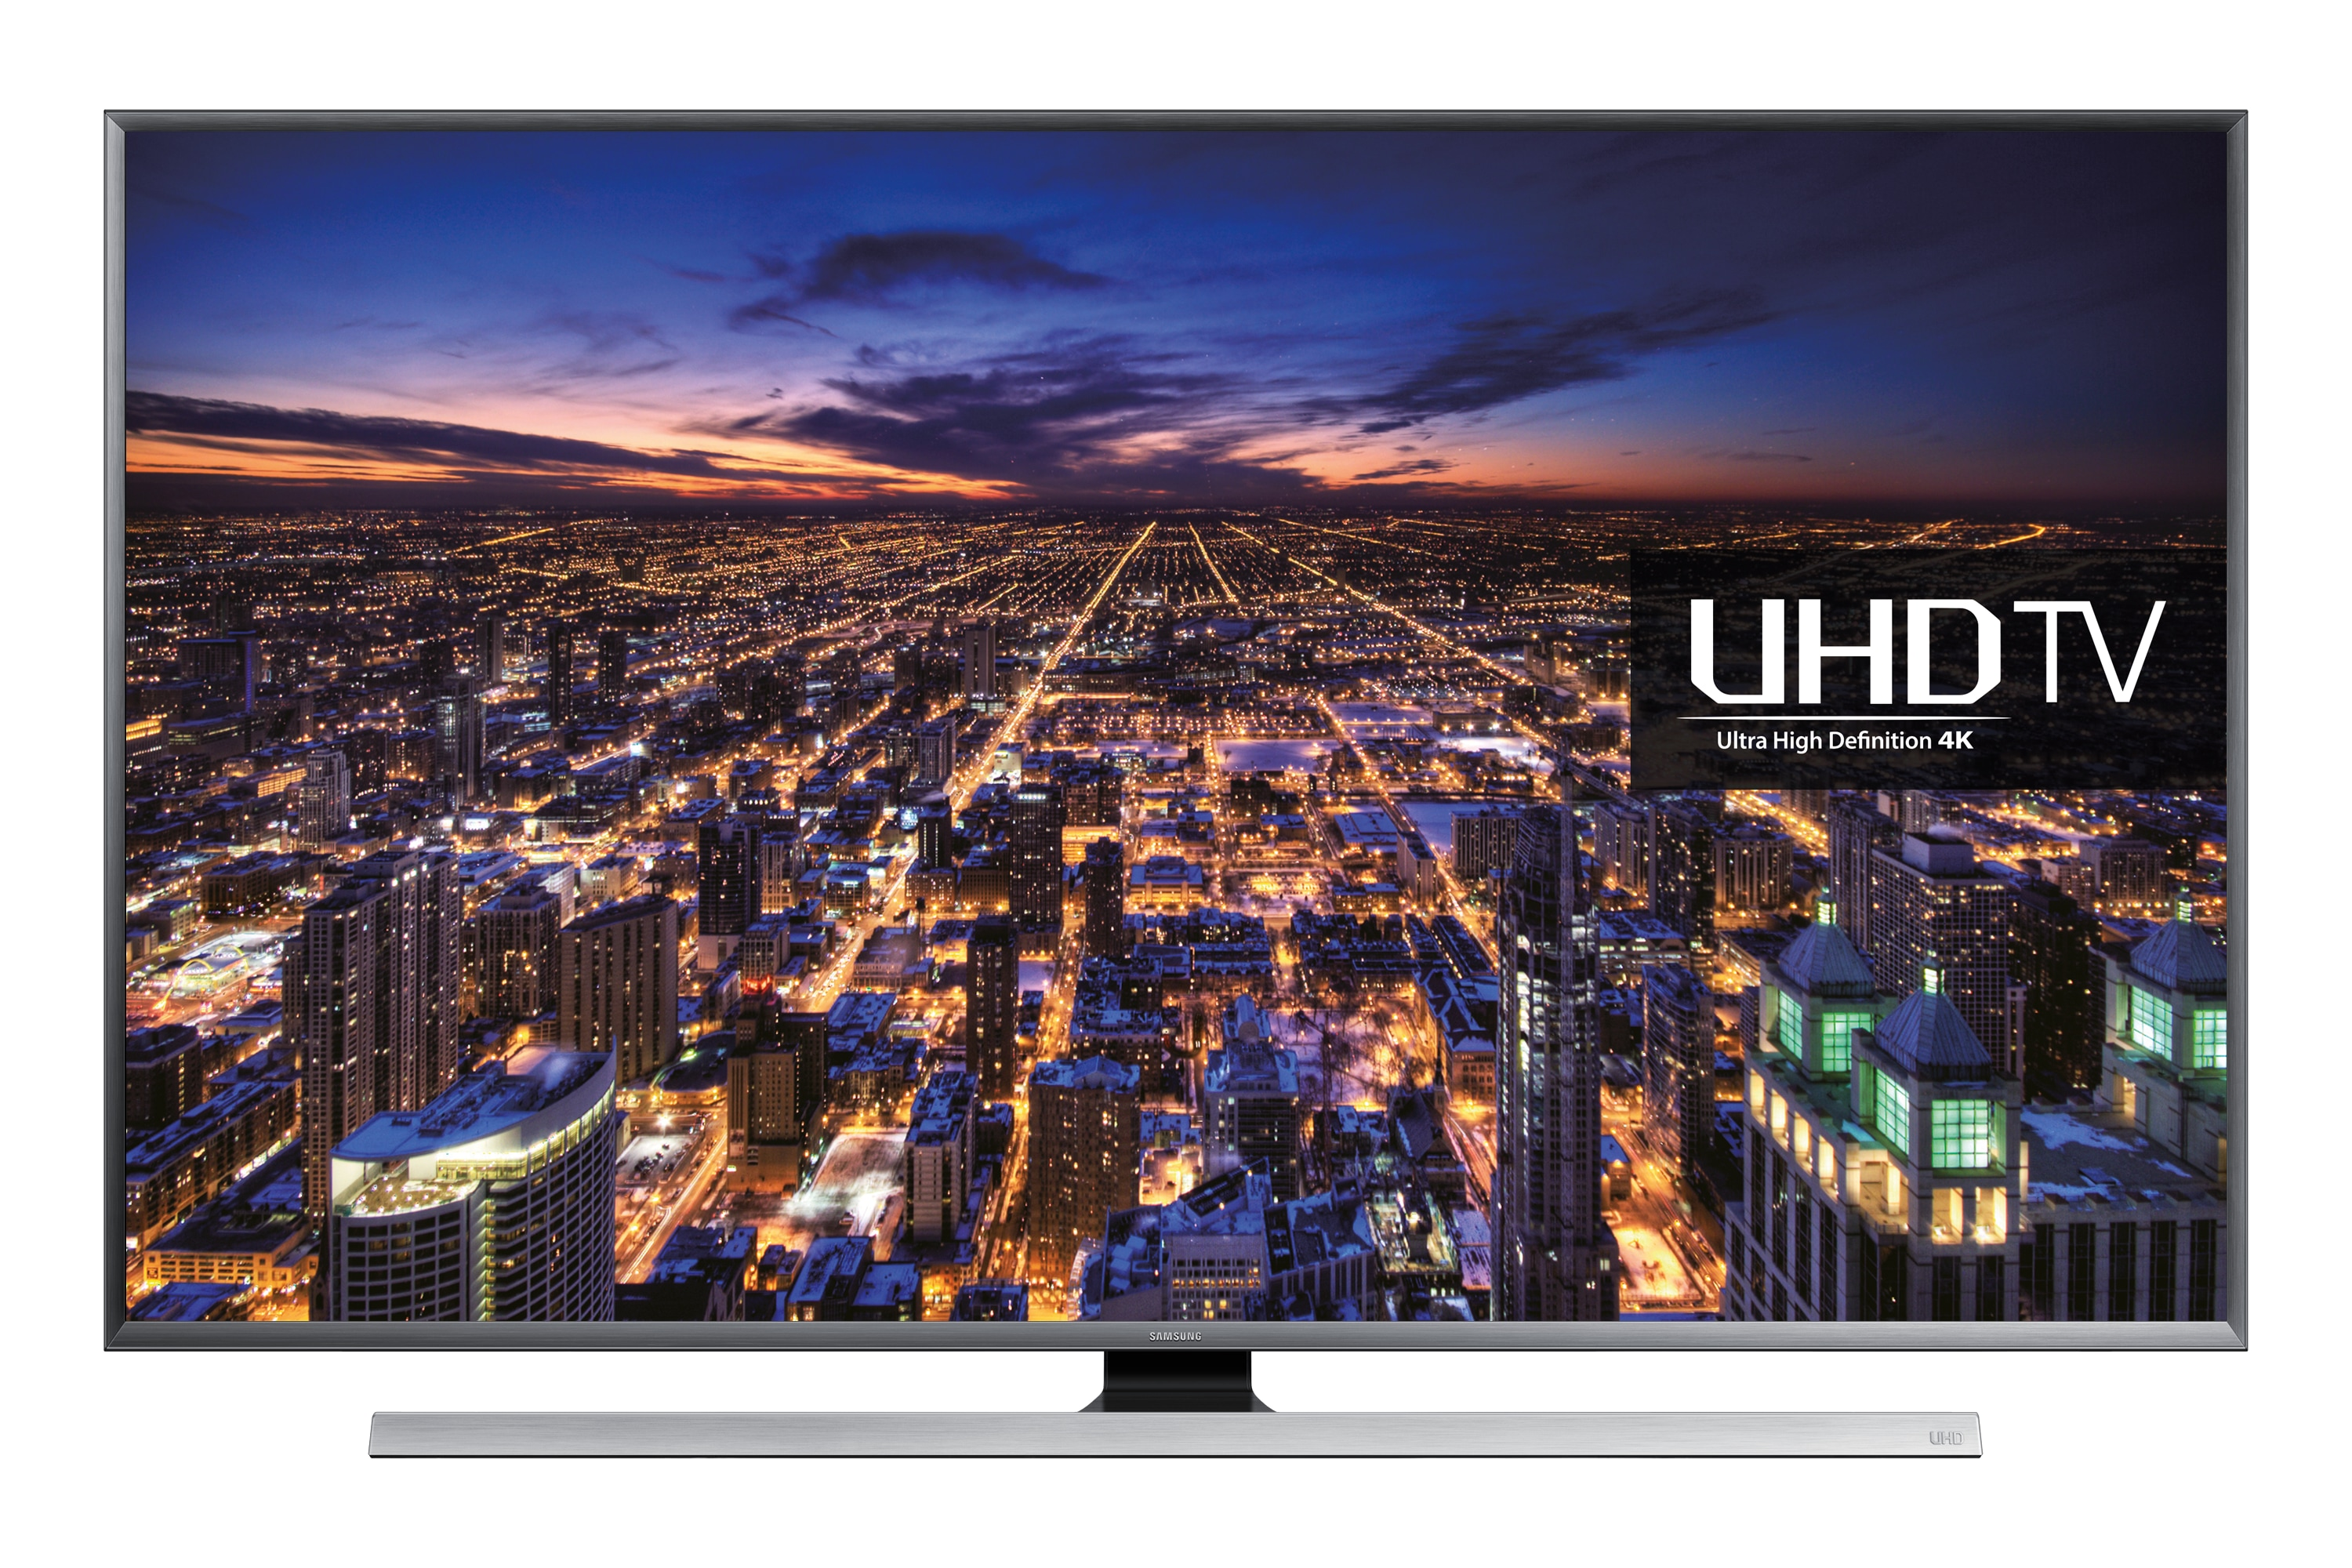 Welchen Led Tv Kaufen 85 Inch Uhd 4k Flat Smart 7000 Series 7 Led Tv Samsung Uk